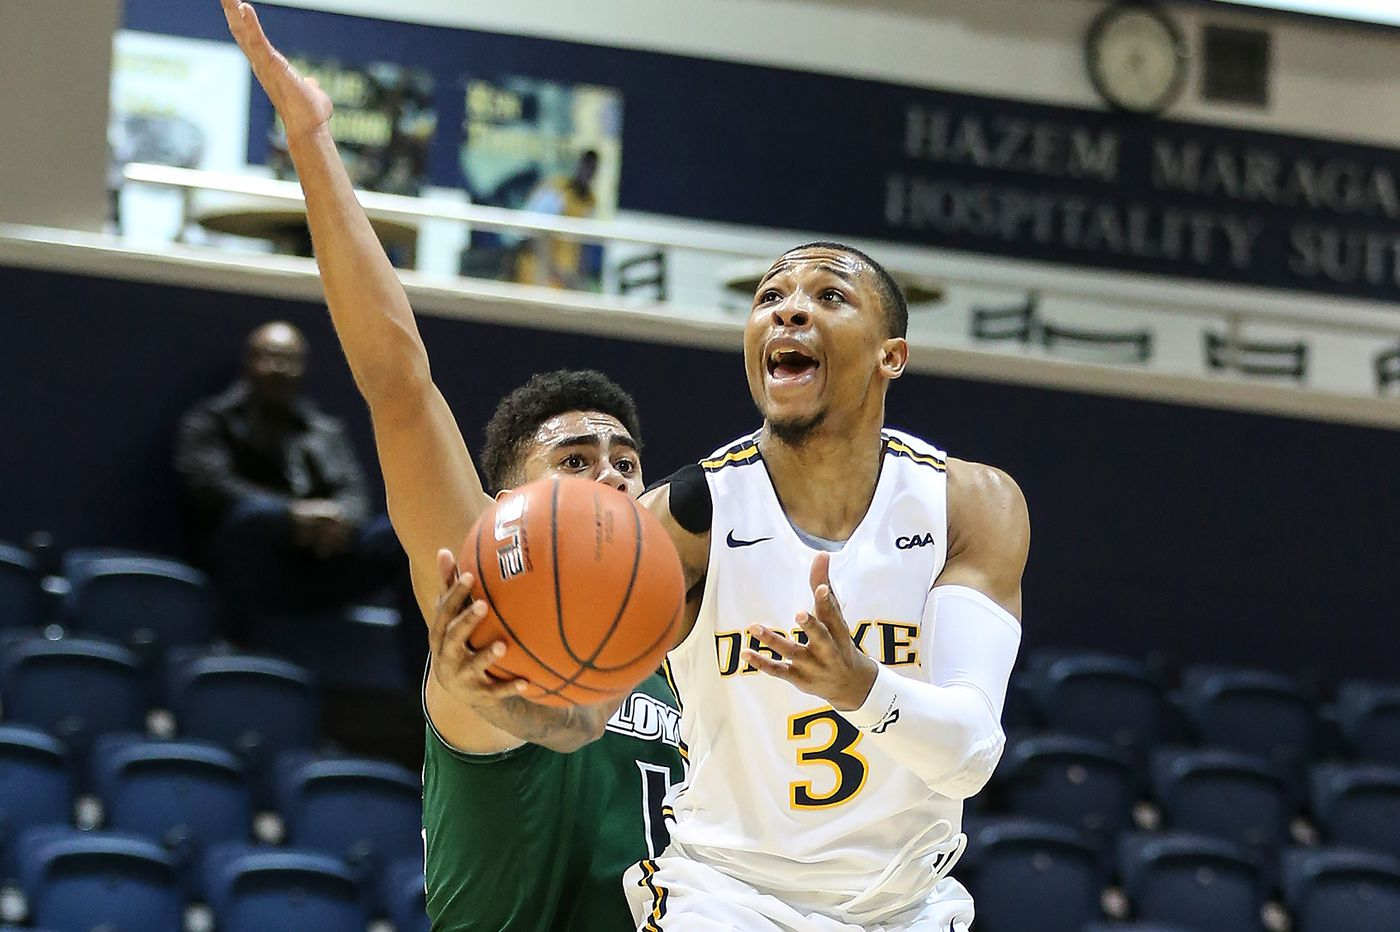 Drexel looking to reverse its recent fortunes with CAA home opener against Elon